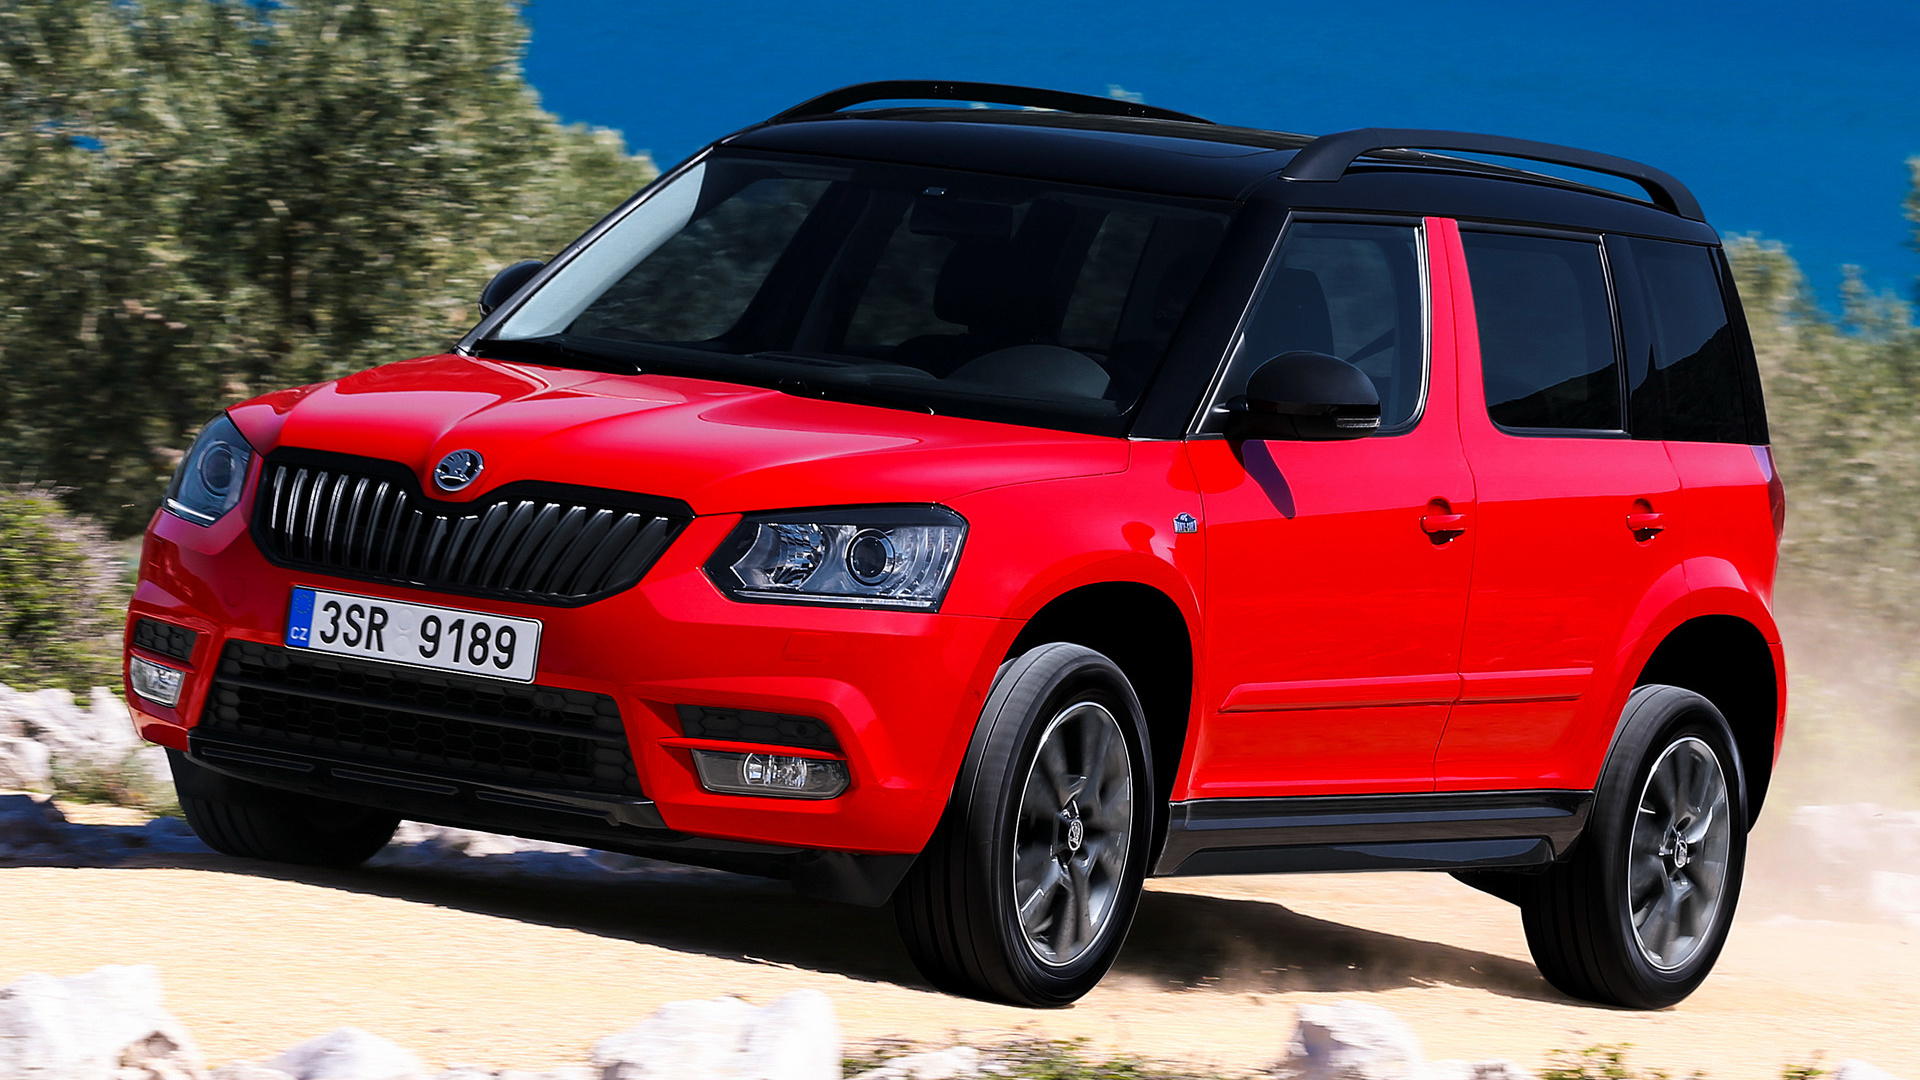 Skoda yeti monte carlo 2014 wallpapers and hd images - Monte carlo movie wallpaper ...